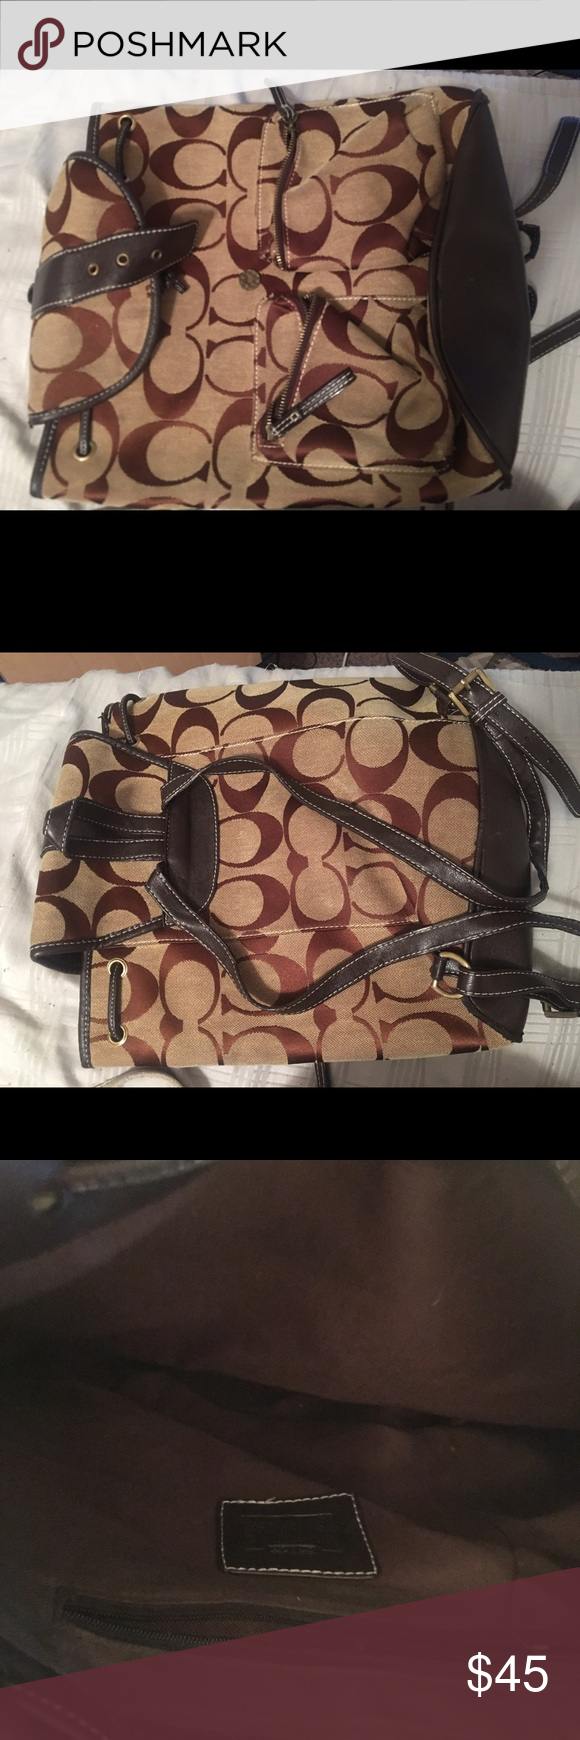 Coach backpack Coach pull string back pack. Half leather half thread. The straps are adjustable. Barely used. Coach Bags Backpacks